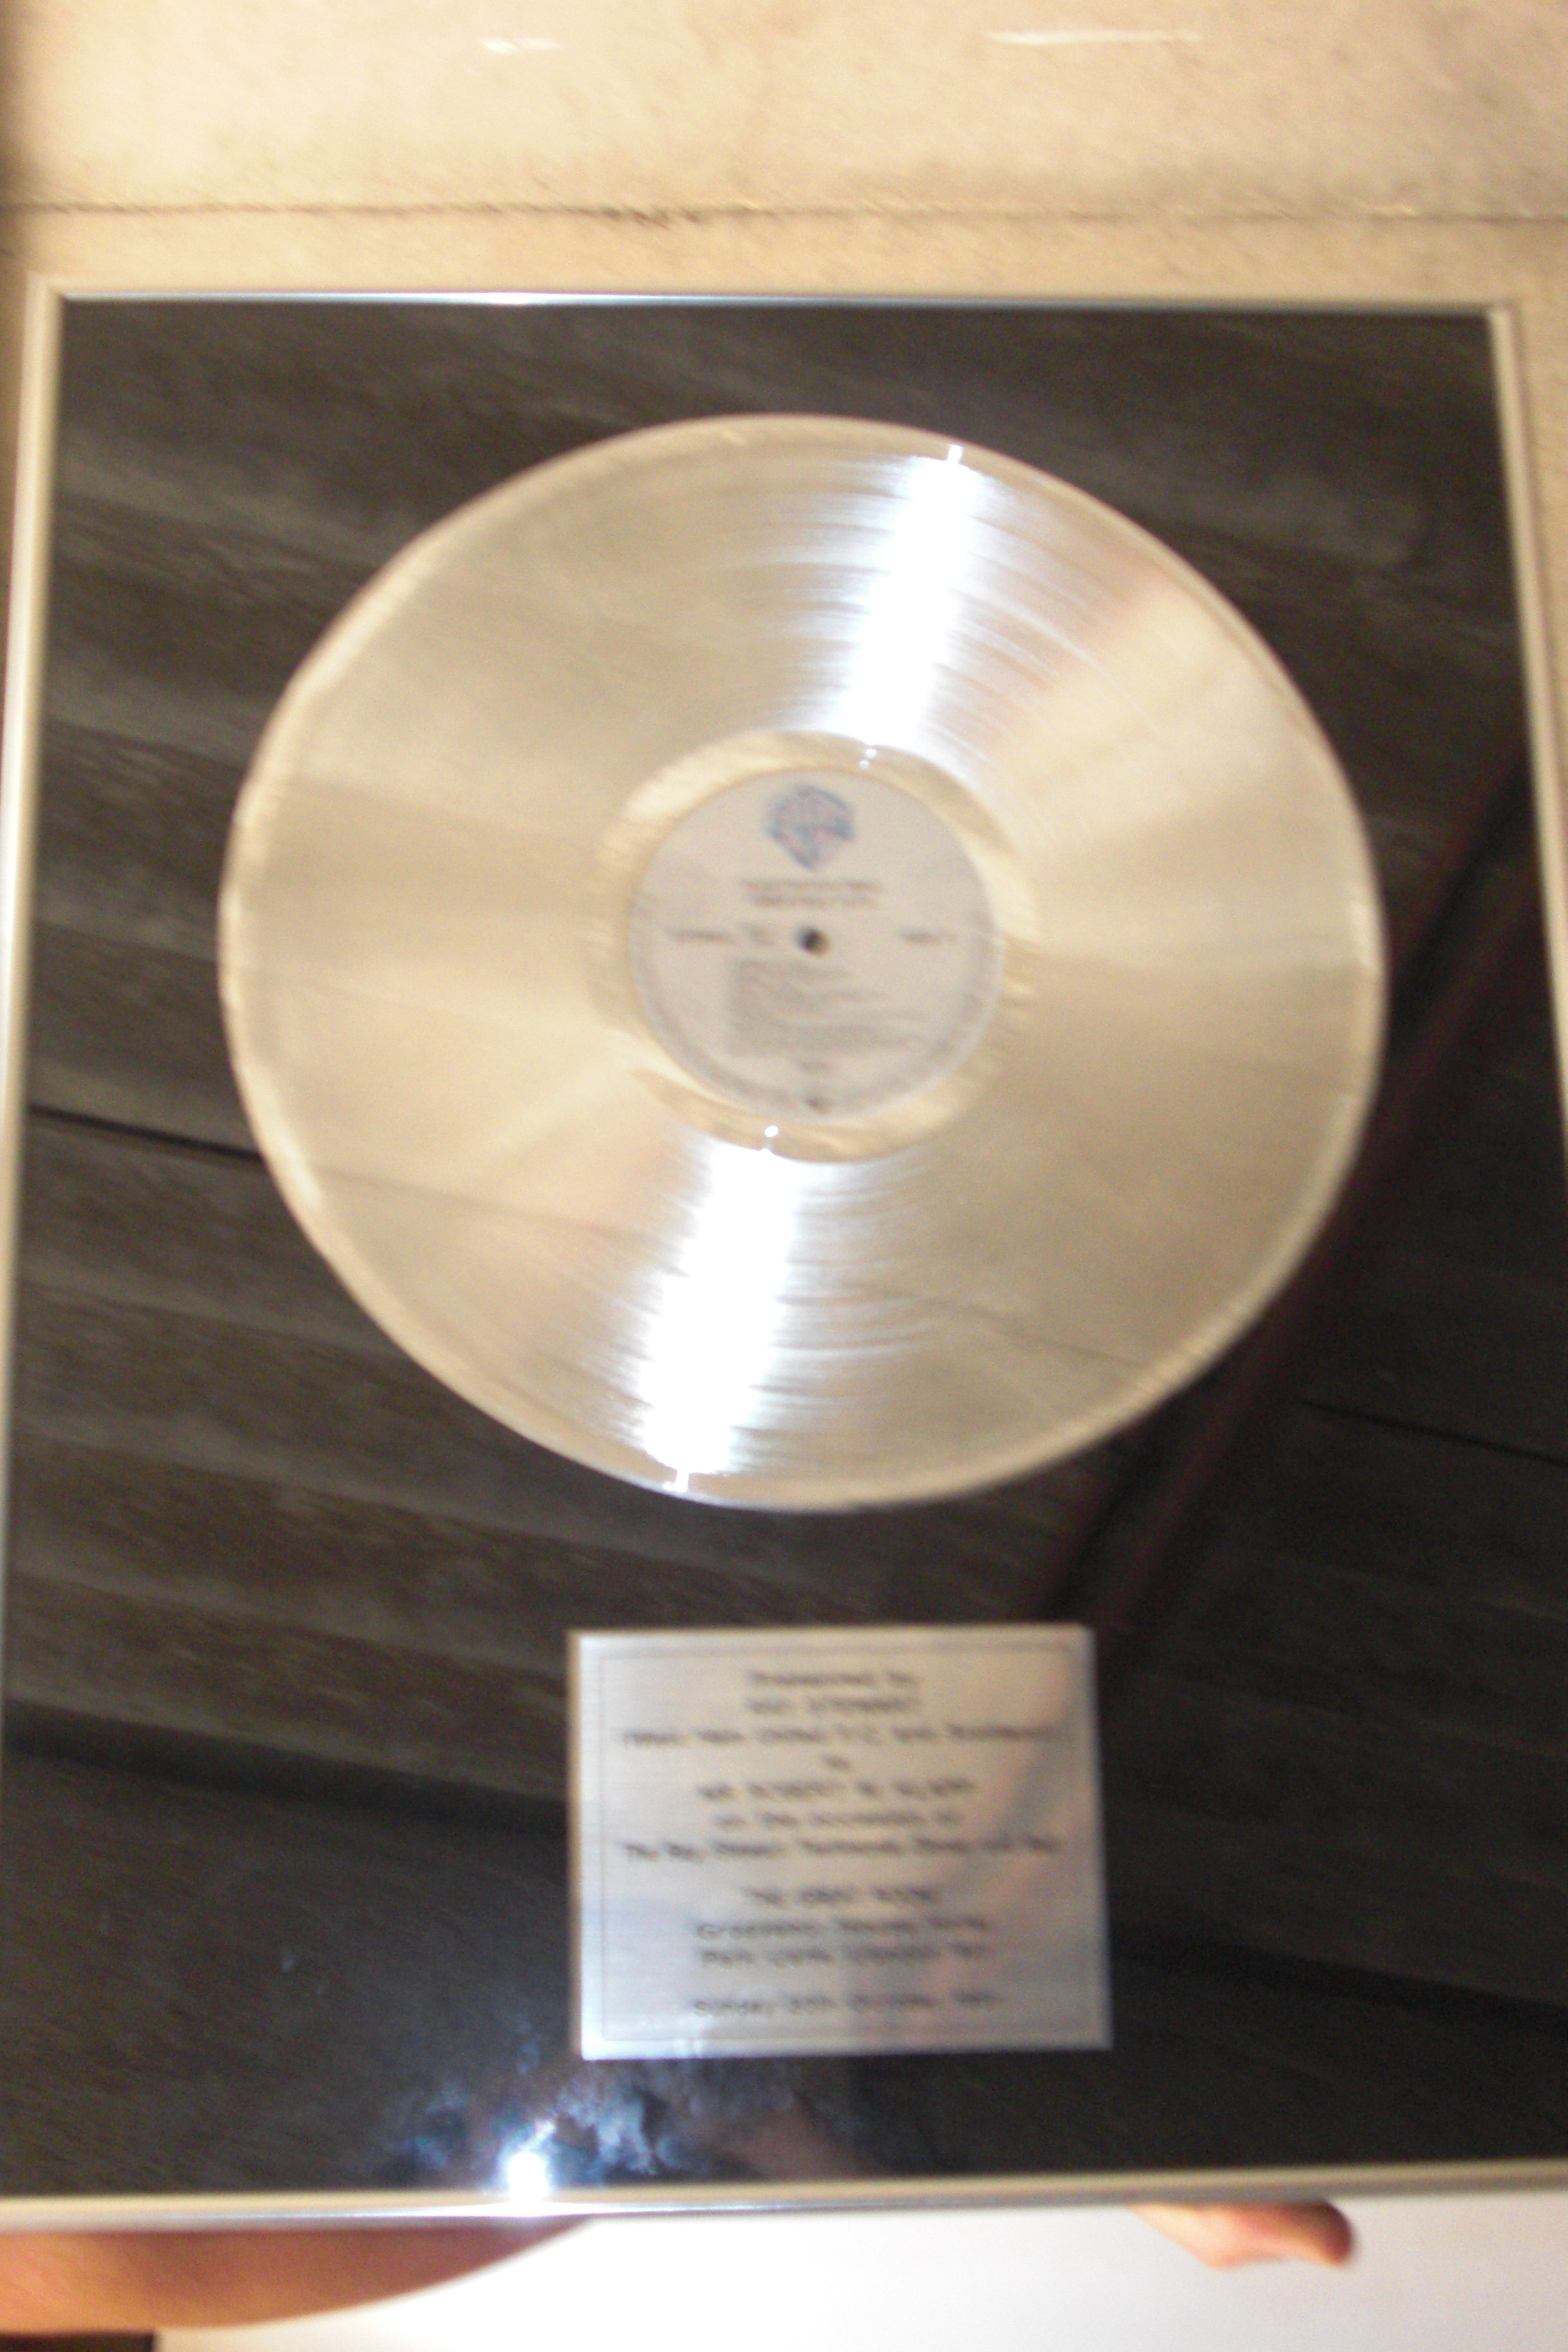 FOR SALE: fleetwood mac greatest hits platinum disc